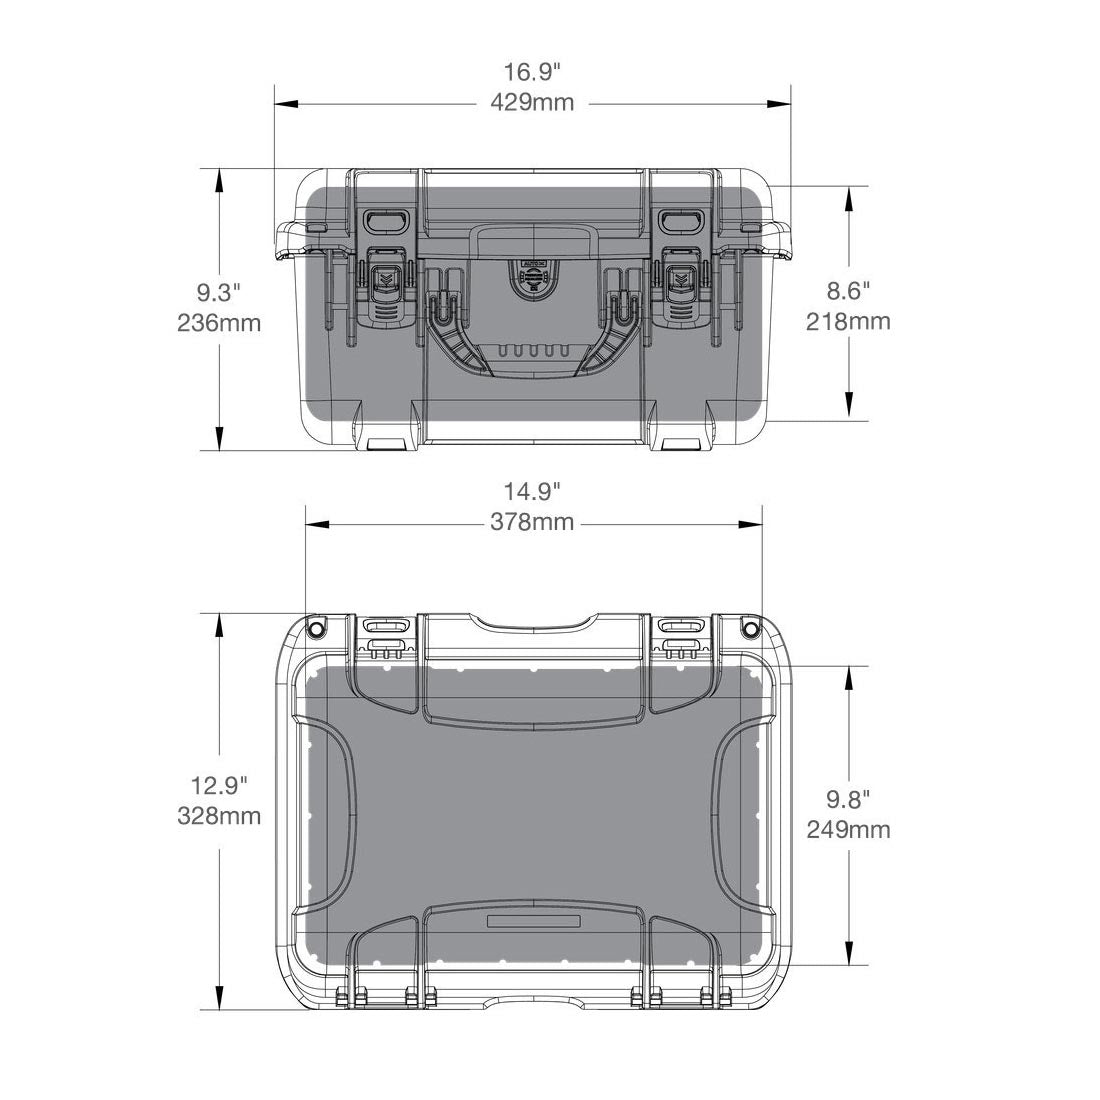 NANUK 918 Hard Case Specifications Dimensions